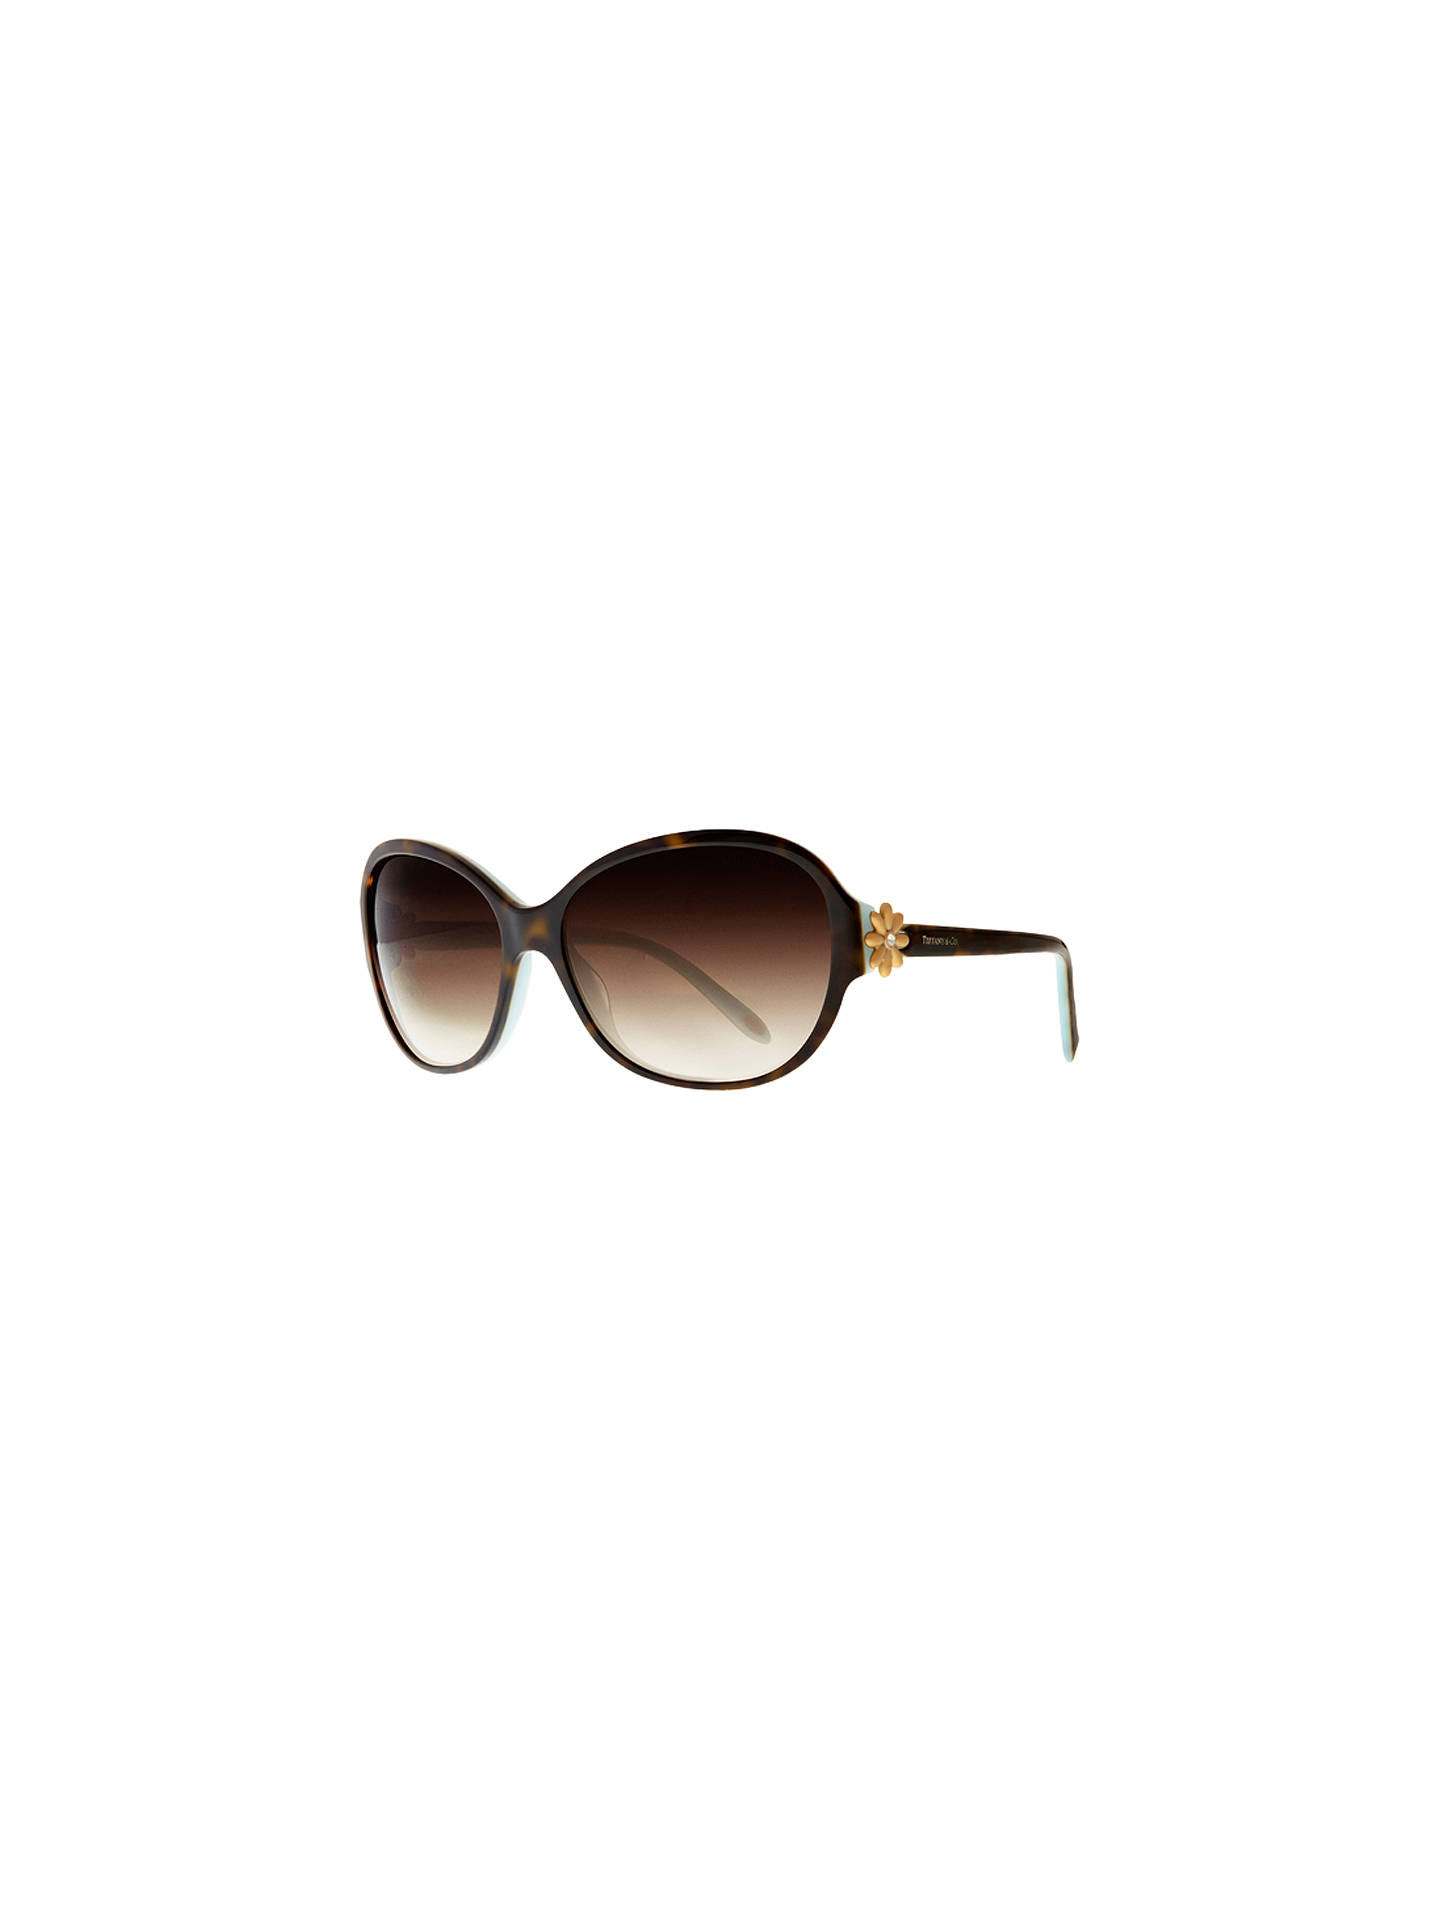 9e824d96d2dc Buy Tiffany & Co TF4068B Single Daisy Sunglasses, Havana / Blue Online at  johnlewis.